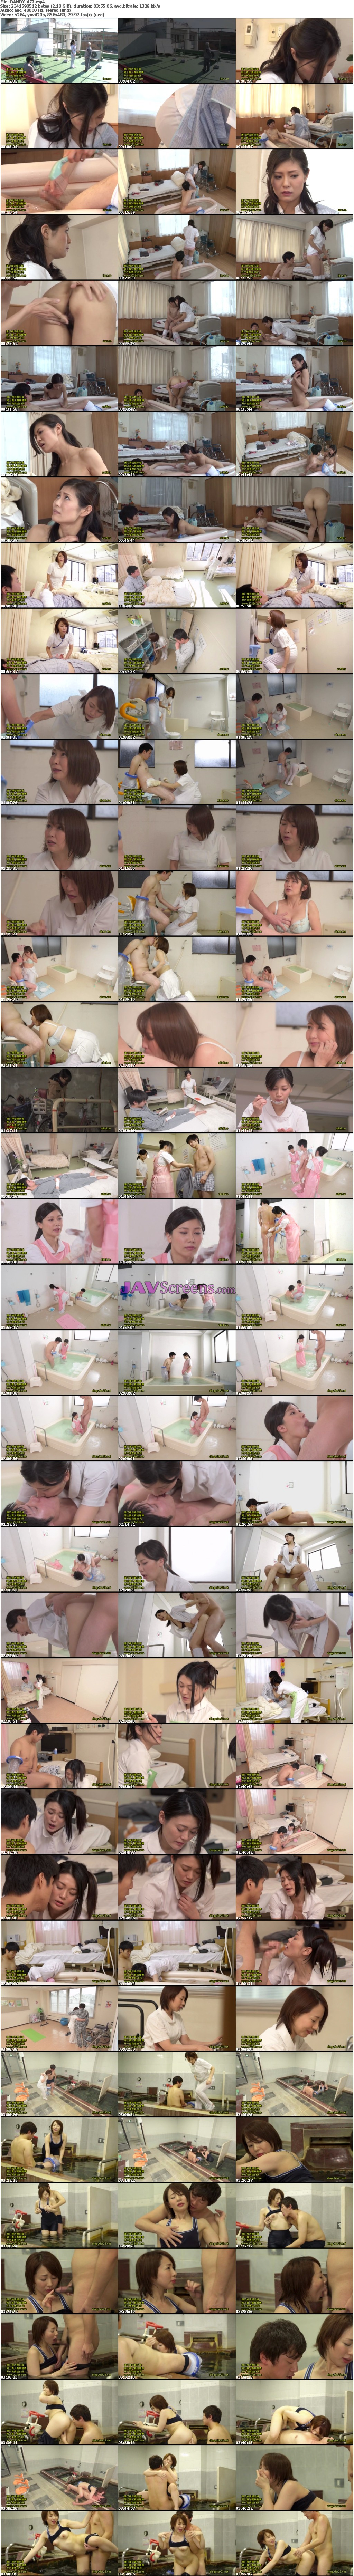 DANDY-477.jpg - JAV Screenshot